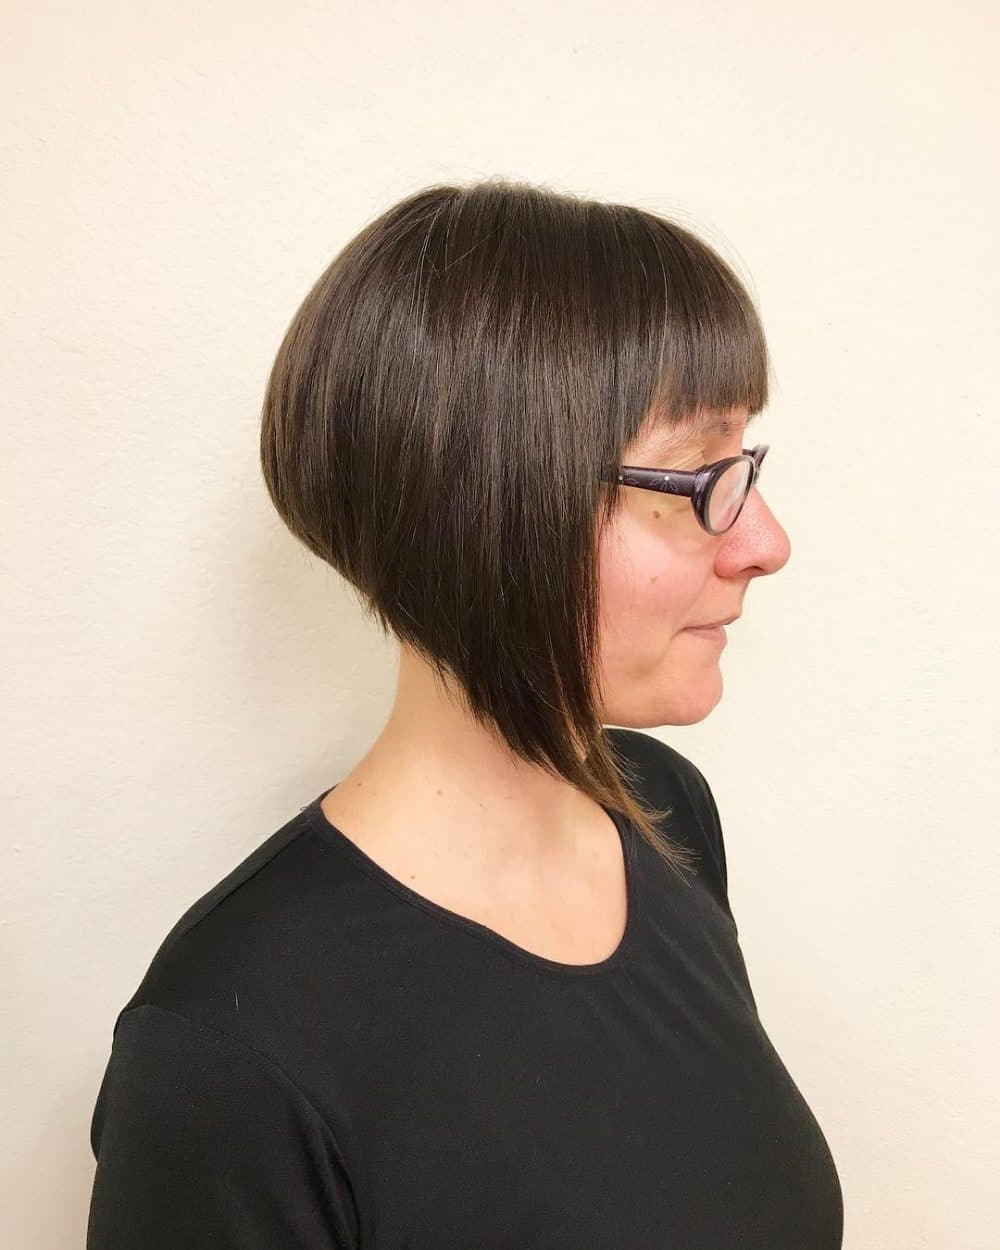 33 Hottest A Line Bob Haircuts You'll Want To Try In 2019 For 2019 Cute A Line Bob Hairstyles With Volume Towards The Ends (View 15 of 20)